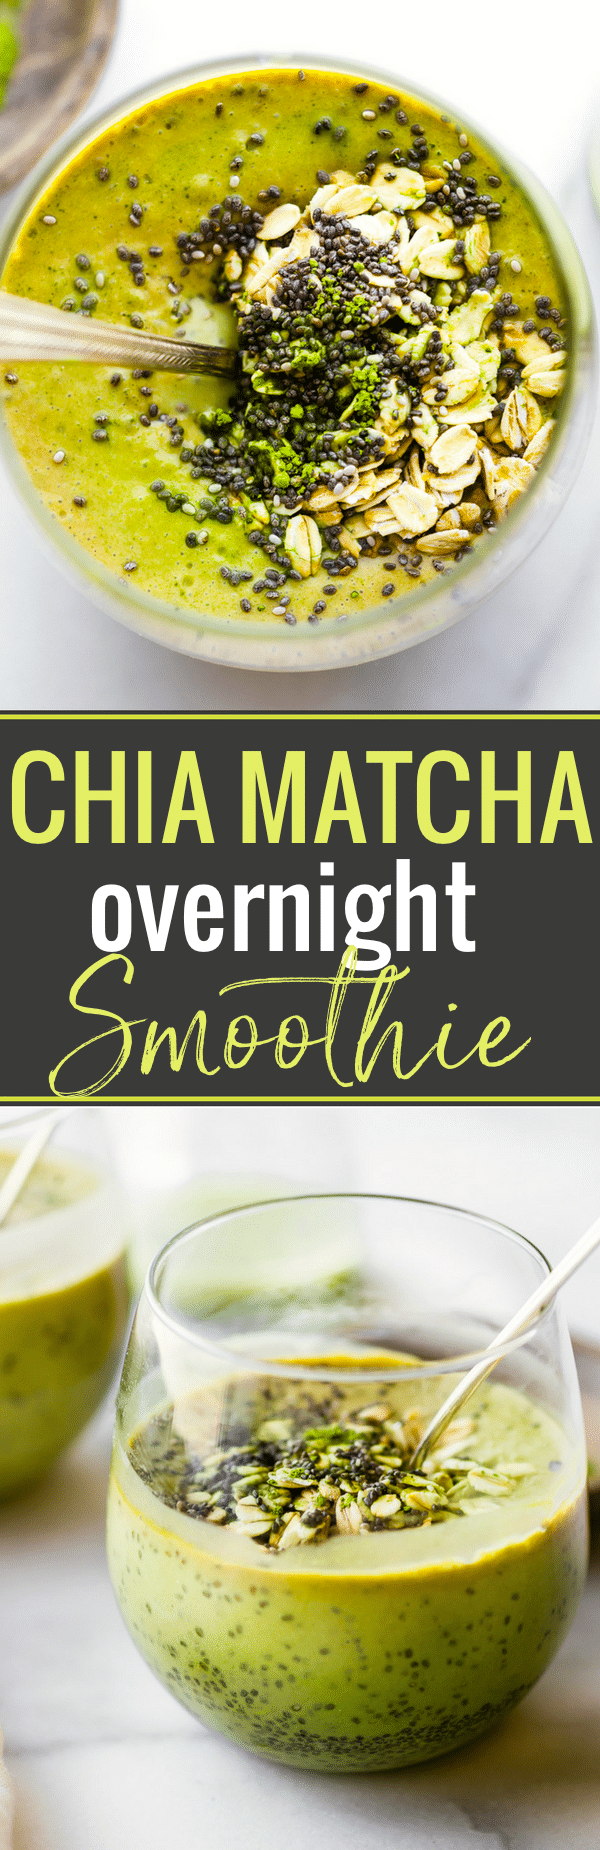 "This Chia Matcha Overnight Breakfast Smoothie is a great way to start the day! An energizing Make ahead smoothie packed with antioxidants, fiber, and probiotics! Just blend it up the night before and enjoy the next morning. The Perfect ""Green"" smoothie breakfast on the go, or anytime! Vegan Friendly and gluten free! www.cottercrunch.com"